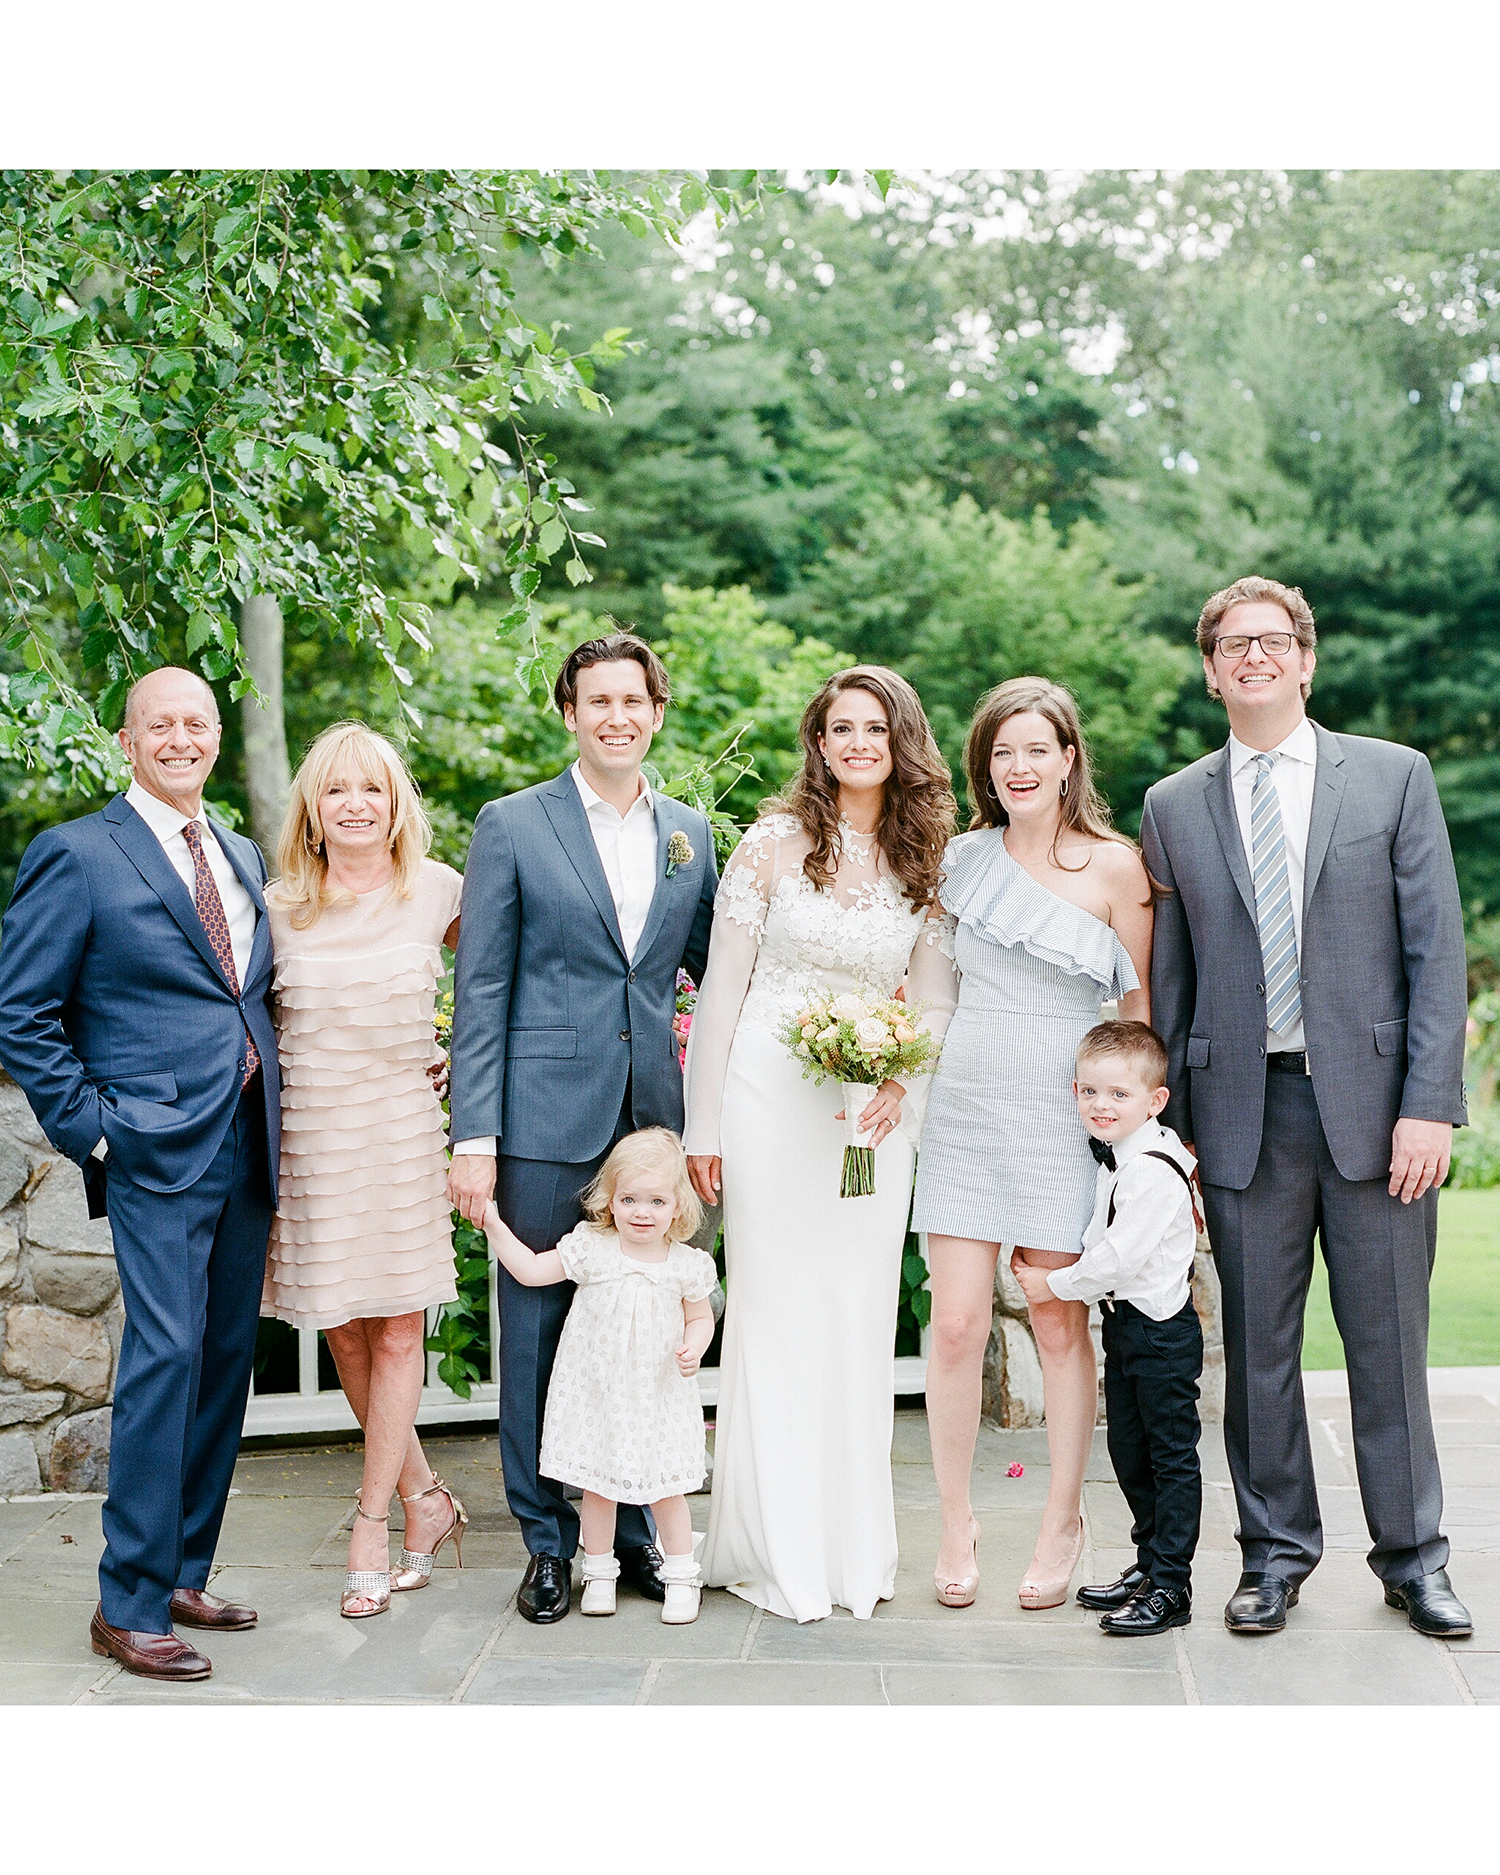 melissa michael wedding family portrait